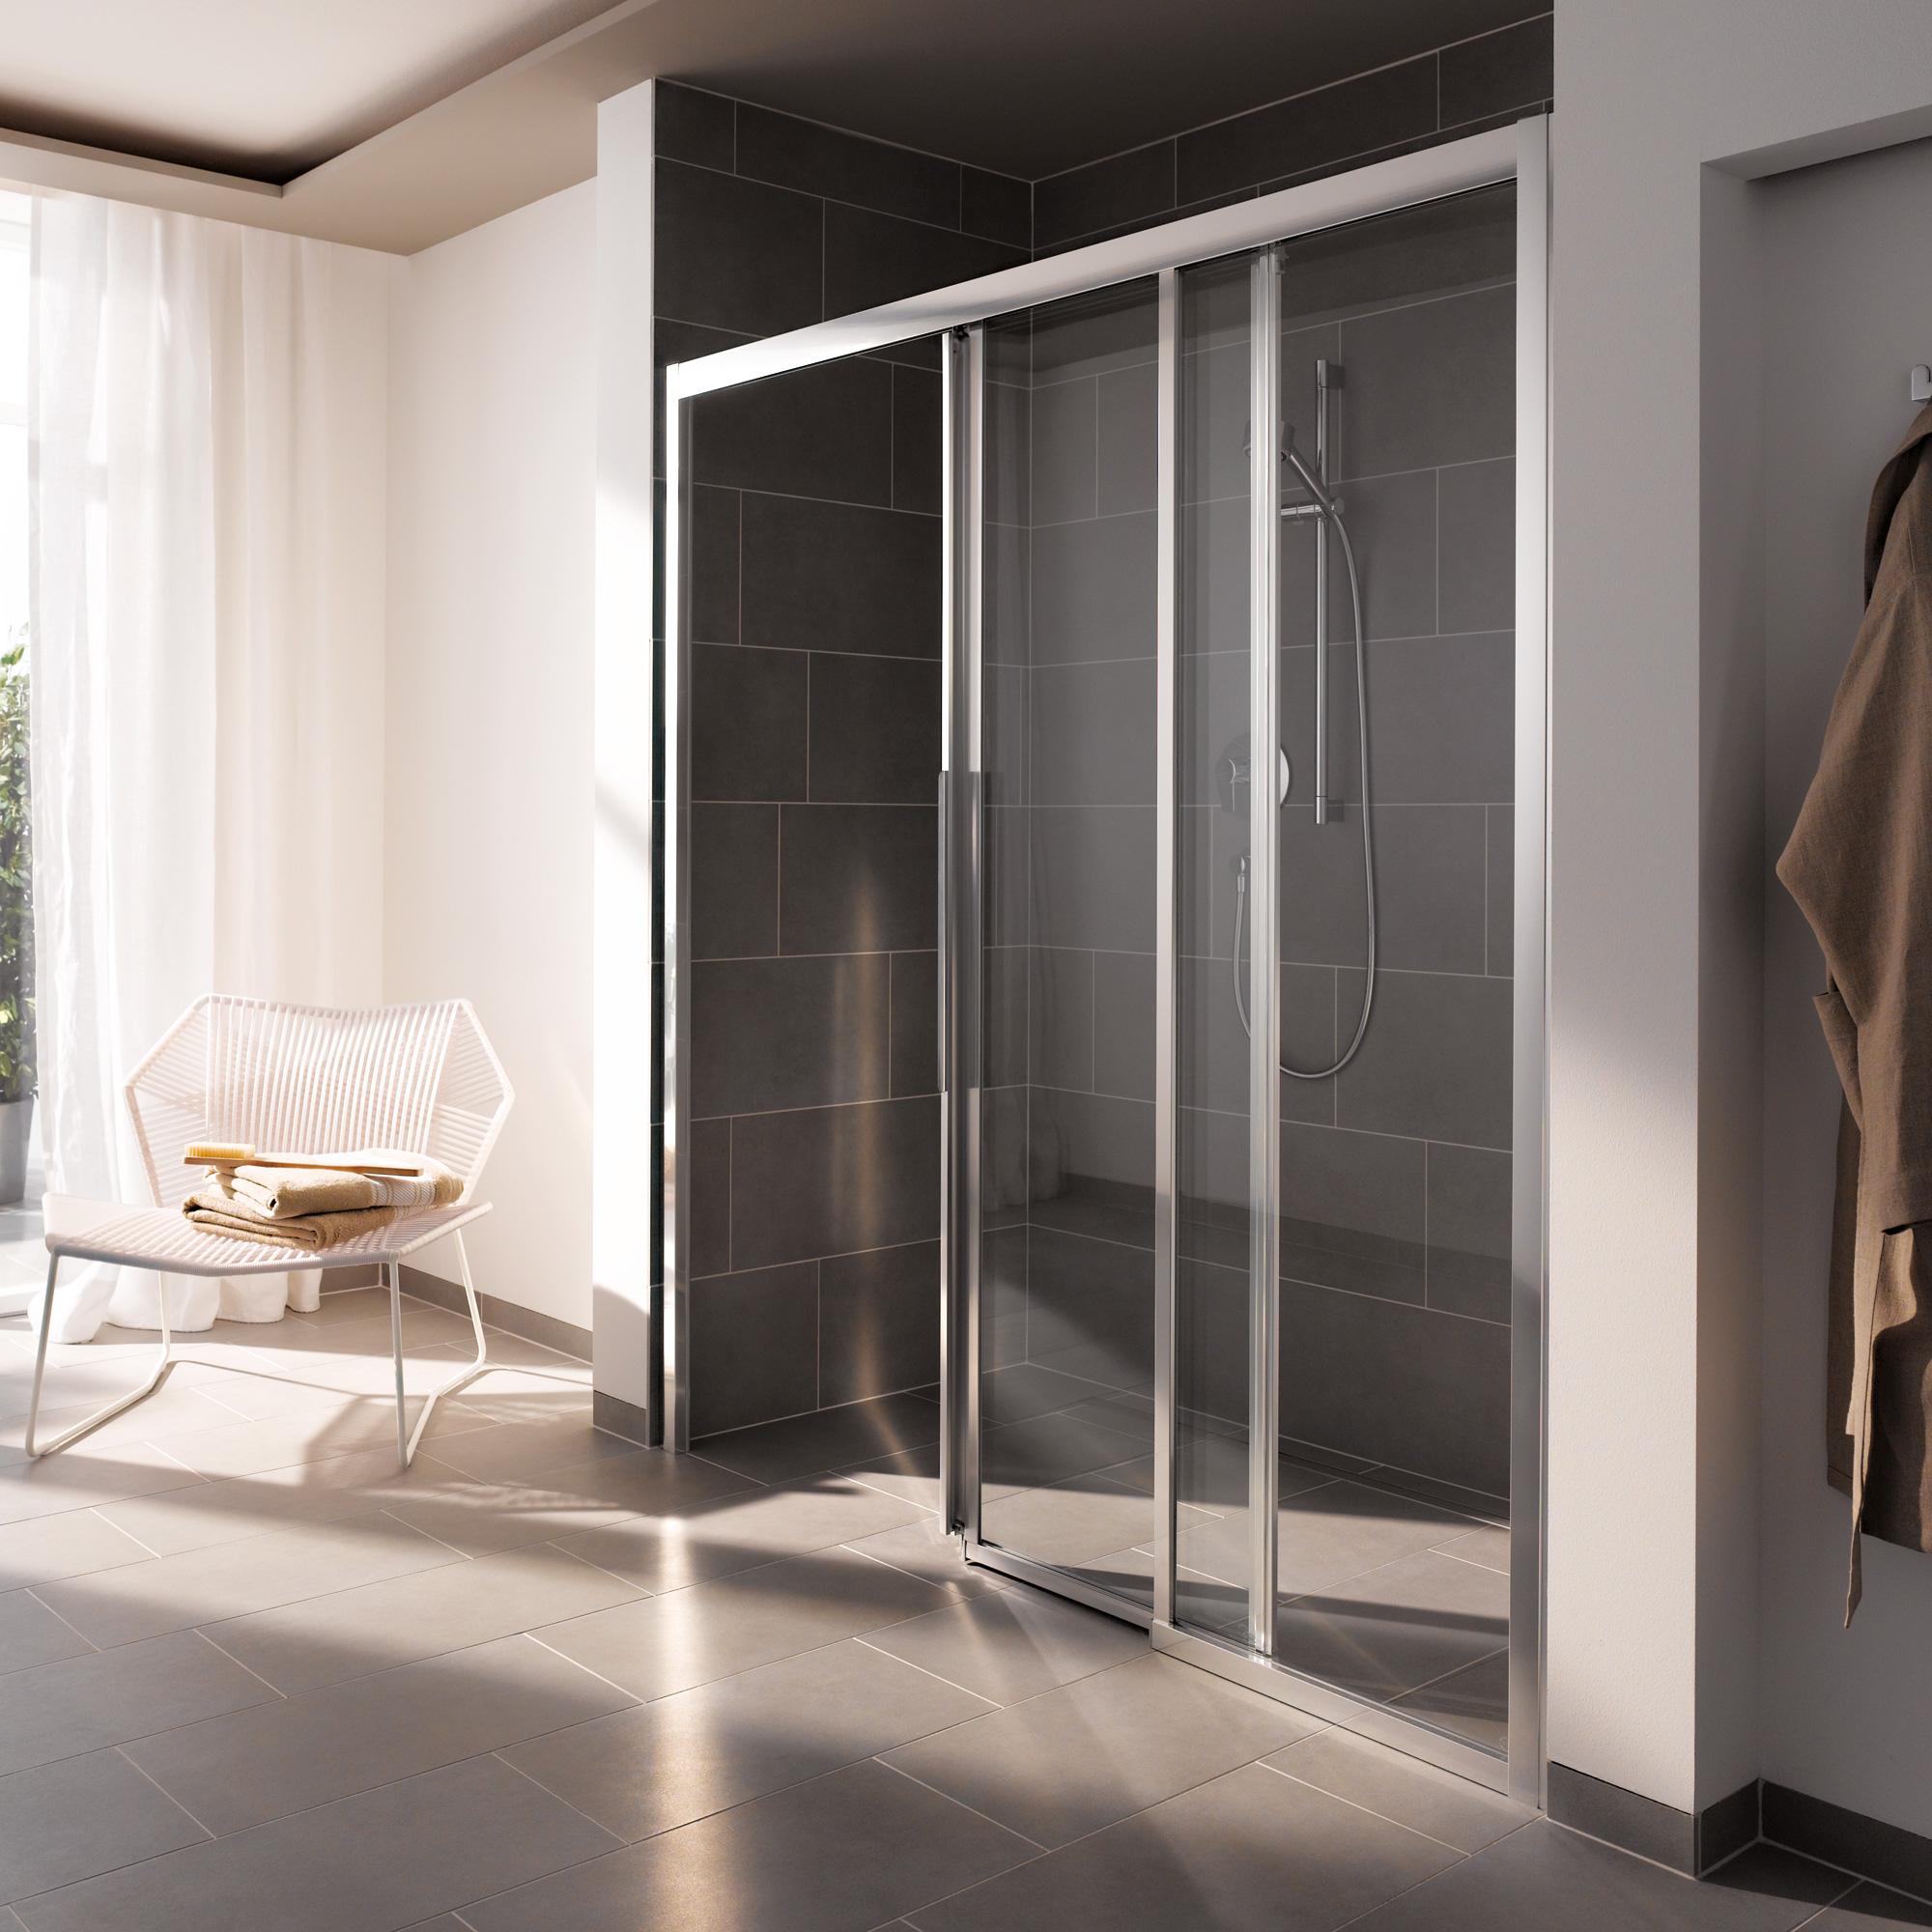 koralle myday comfort schiebet r 3 teilig sbf3f esg transparent incl glasplus silber poliert. Black Bedroom Furniture Sets. Home Design Ideas